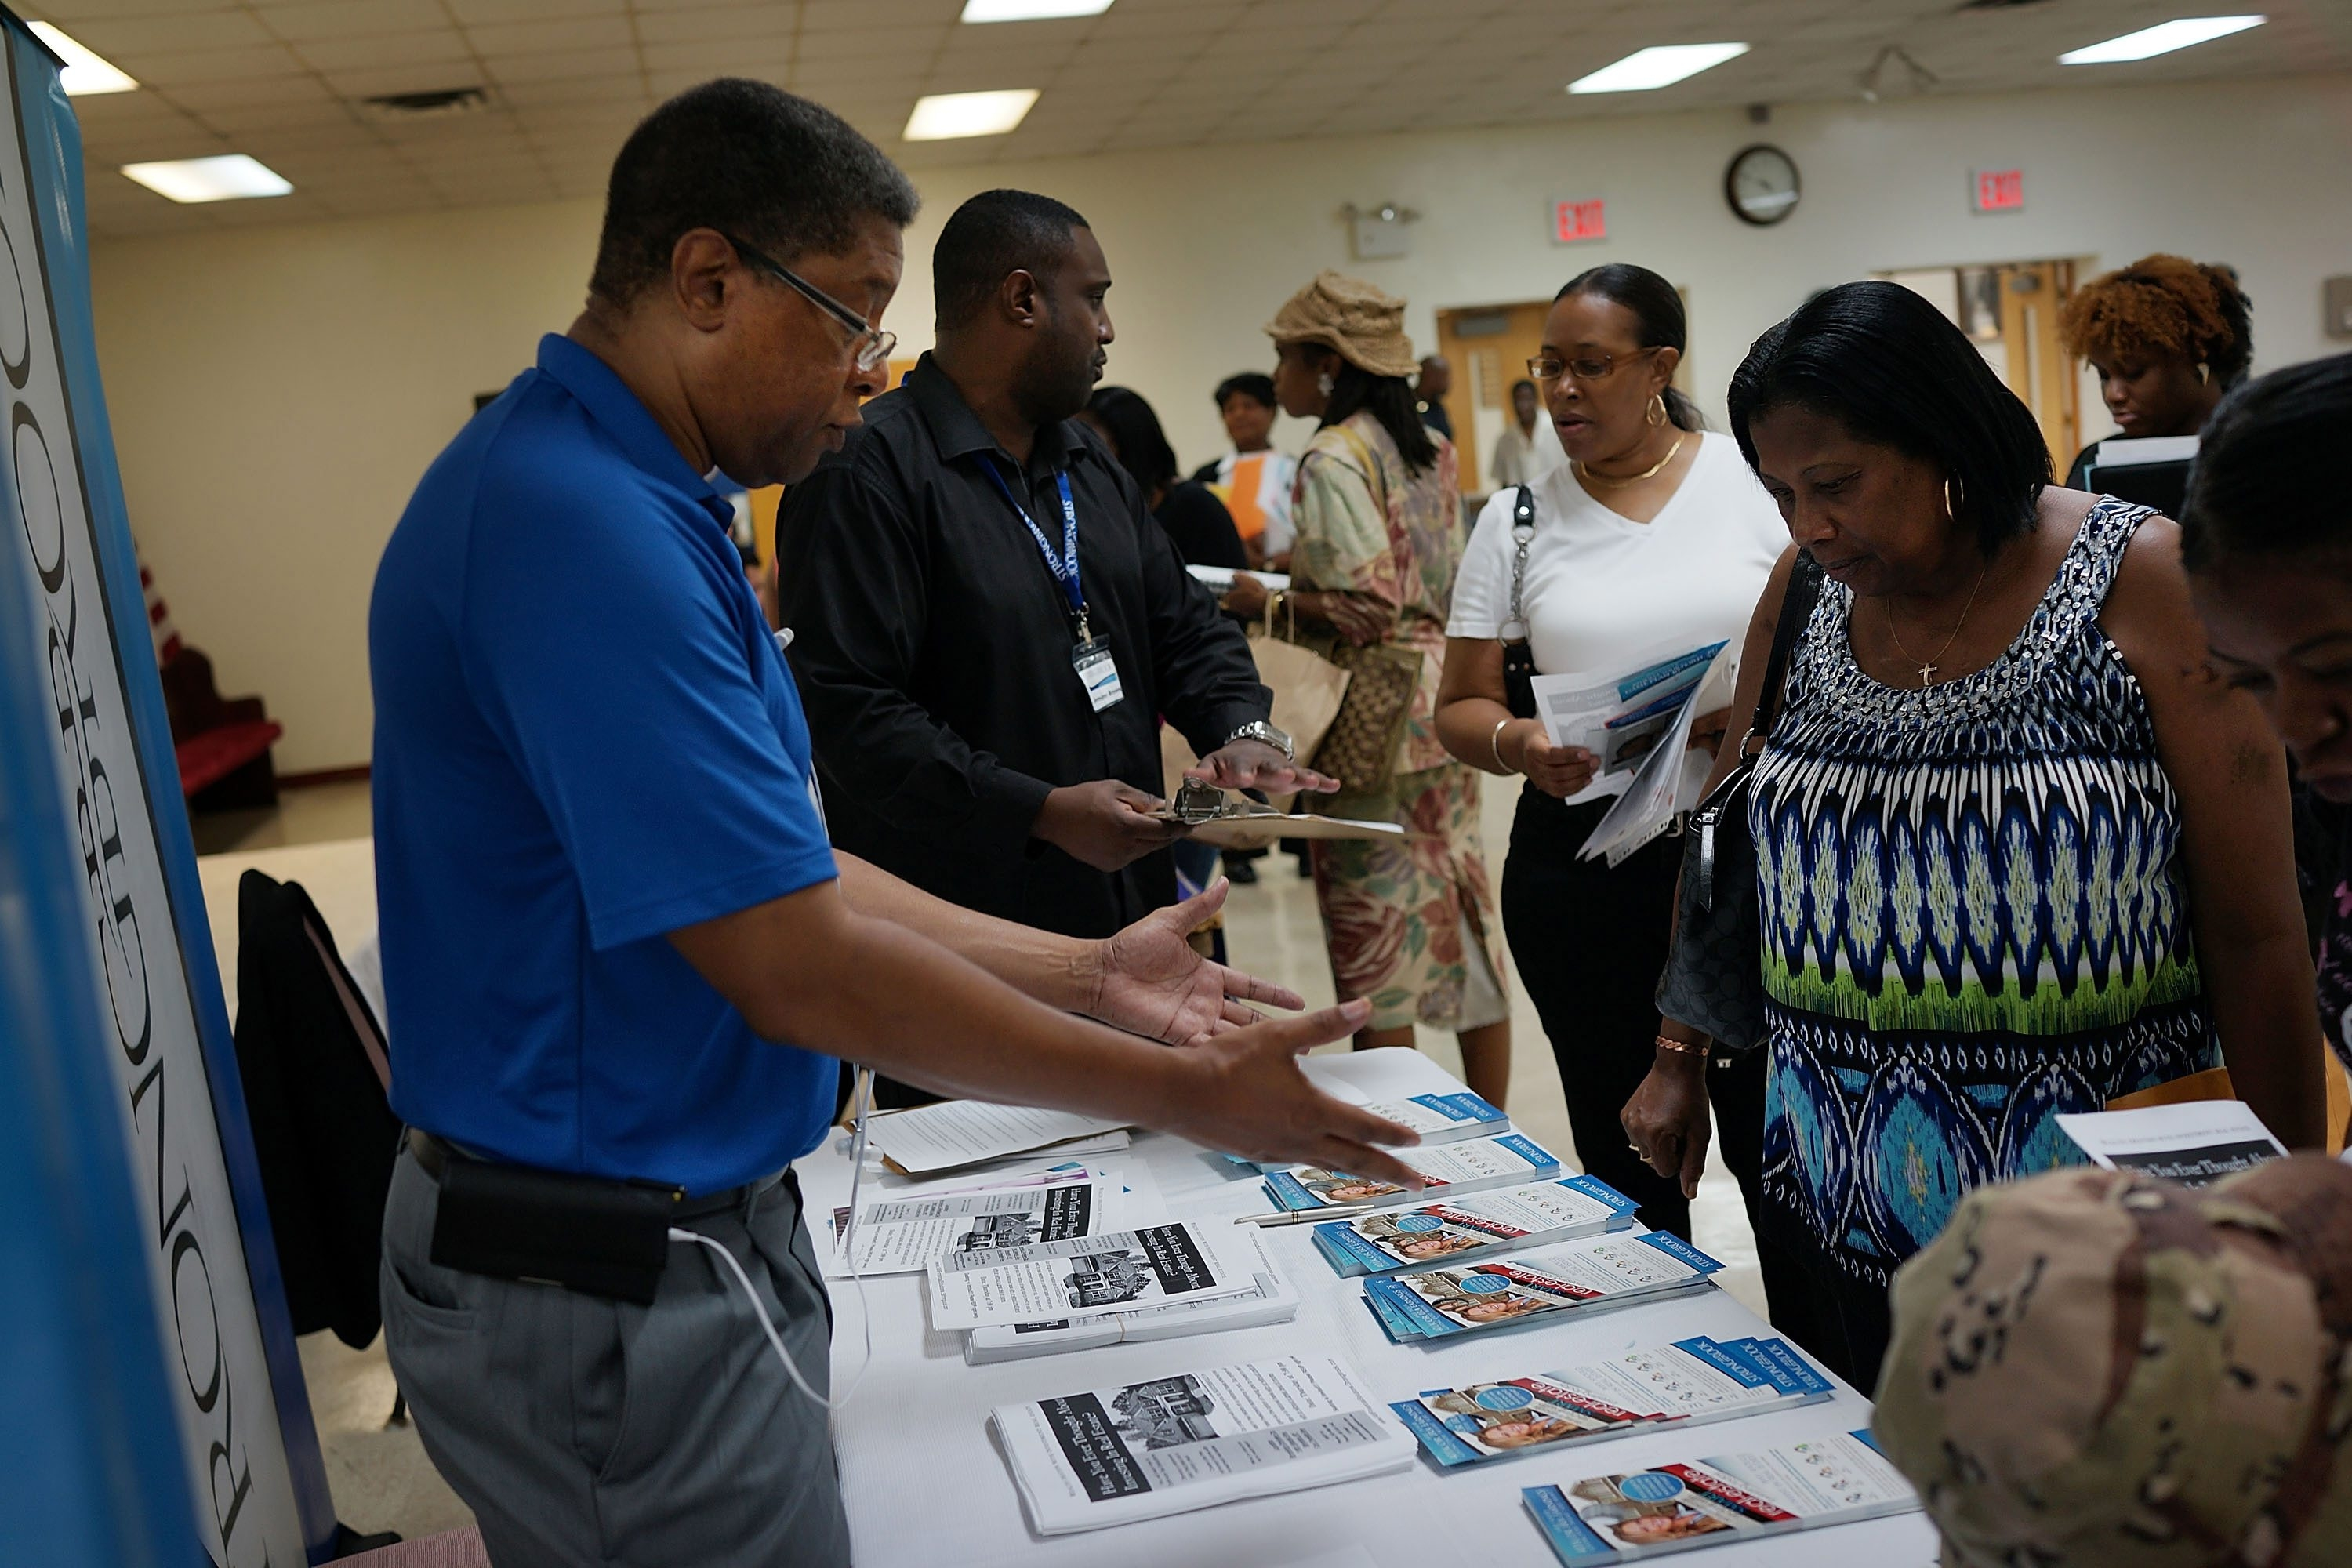 Job seekers talk to recruiters at a job fair in Clinton Hill, Brooklyn, on Aug. 28. Job hunters should know that legitimate headhunters are paid by employers, not by those seeking employment.